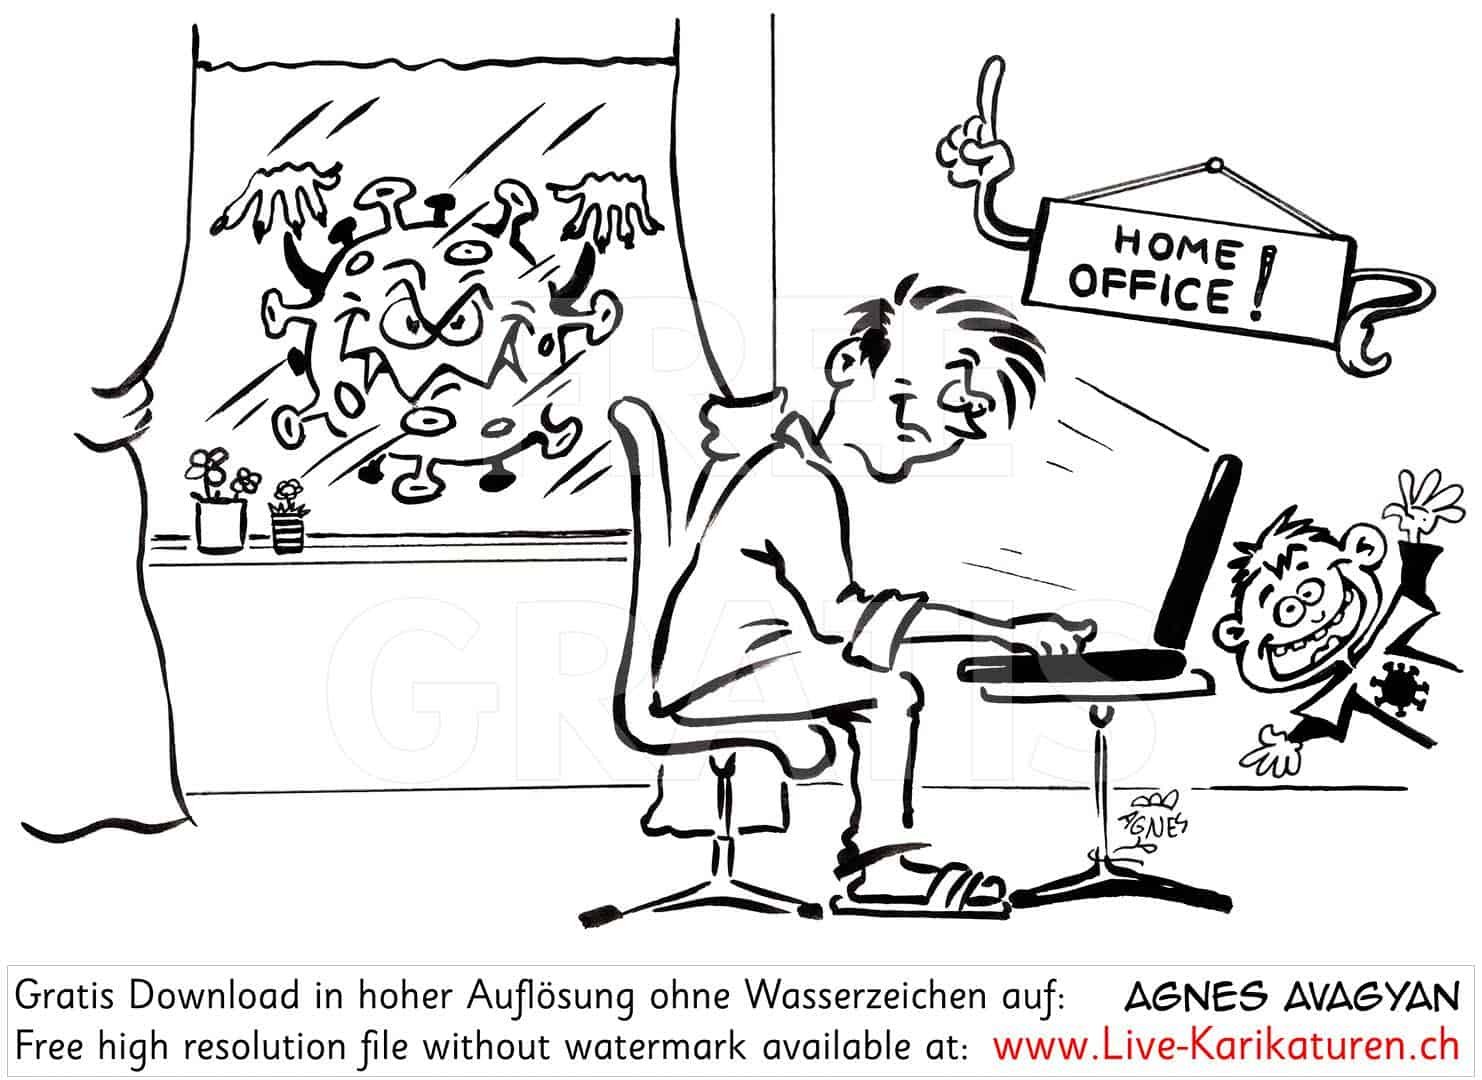 Virus, Corona, Covid-19, Covid19, Homeoffice, Home Office, Kinder, Buero, arbeiten, Kinder, Terror, Stress, Epidemie, Pandemie, 2020, Agnes Live-Karikaturen, Clipart, Comic, Cartoon, Illustration, Cartoon, Comic, Karikatur, Zeichnung, Download, kostenlos, Gratisbild, gratis, free, Kunst, Kuenstler, Live Karikaturist, Comiczeichner, Armenia